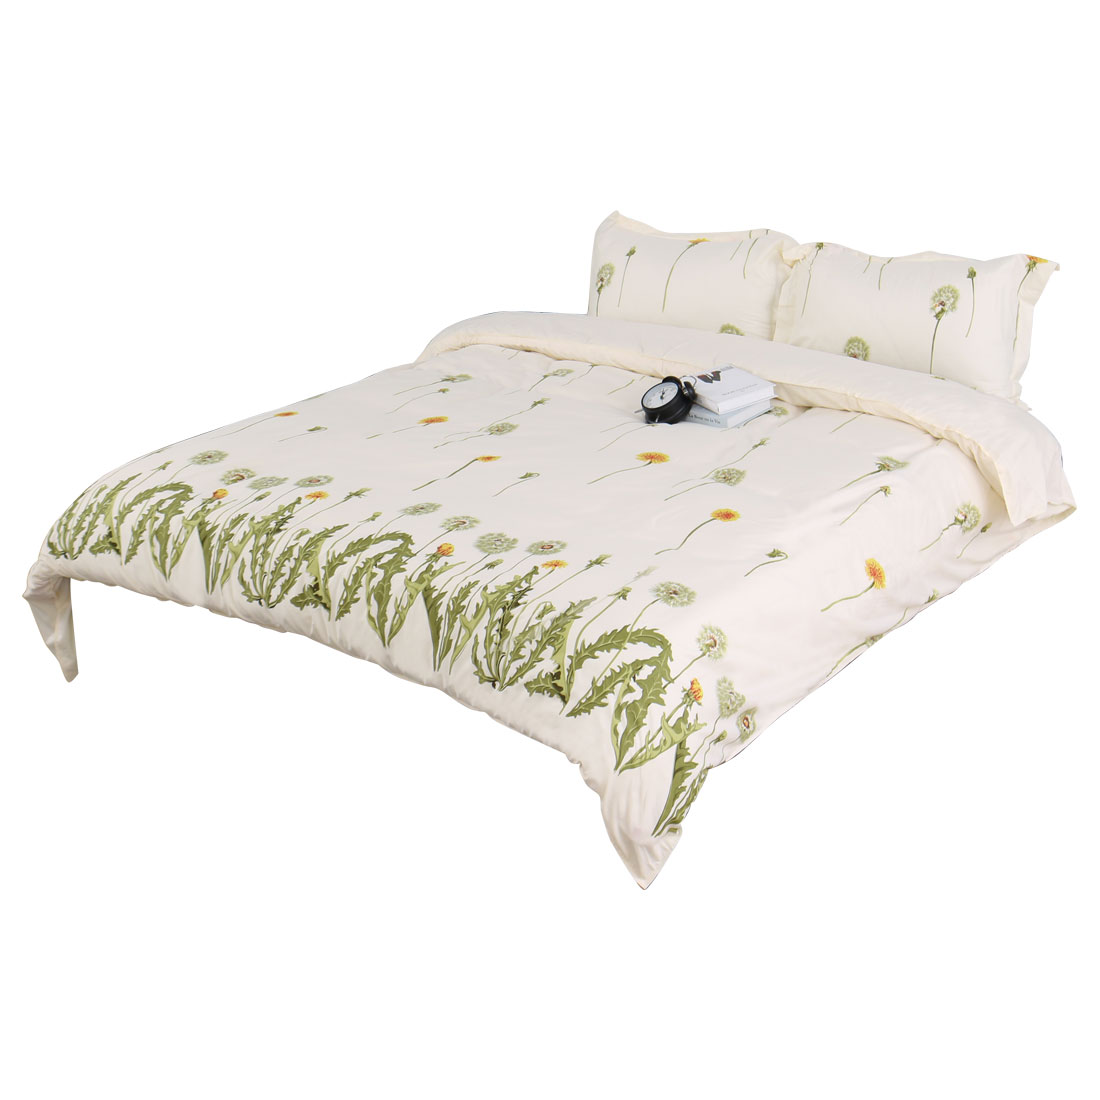 Floral Rattan Pattern Duvet Quilt Cover Pillowcase Bedding Set Super King Size